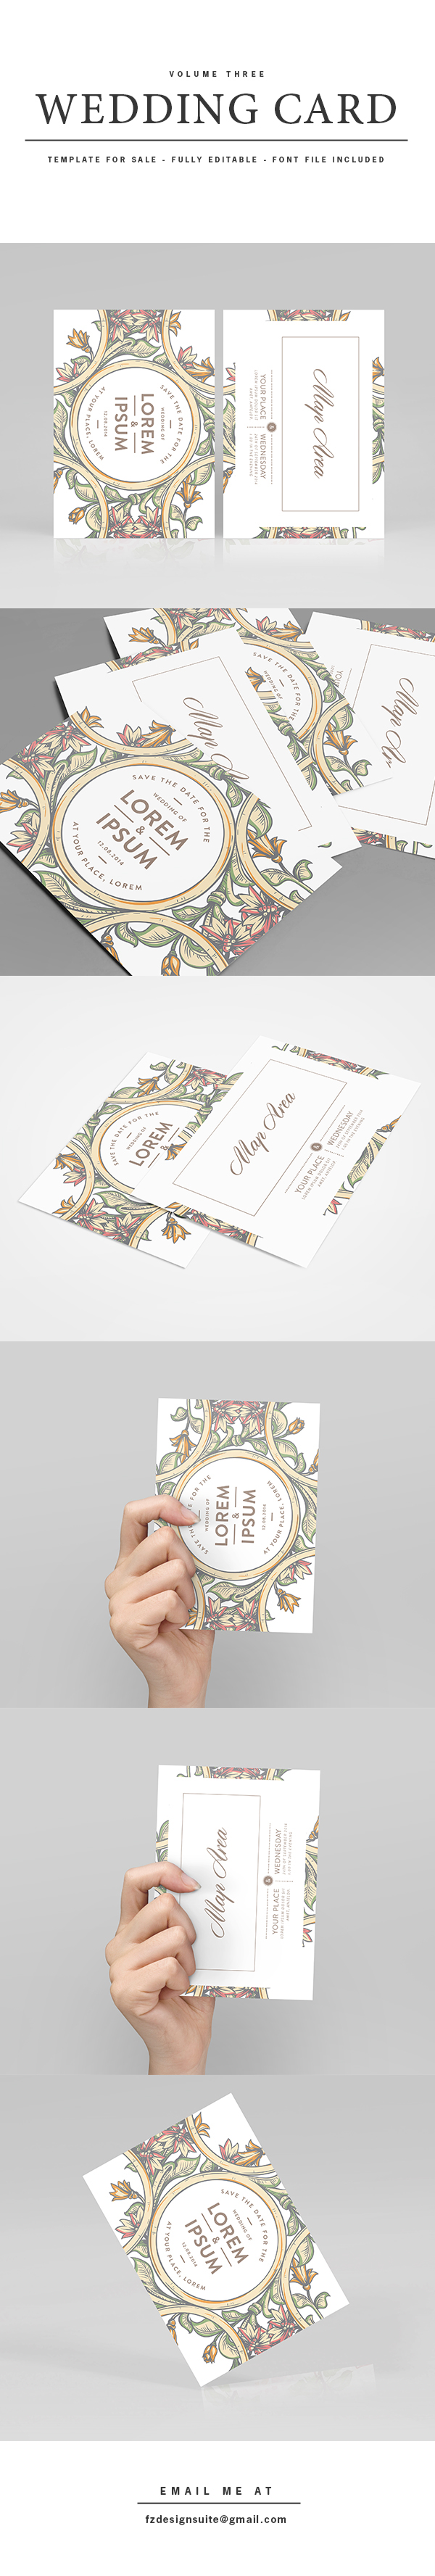 FOR SALE) Wedding Invitation Template - Volume 3 on Student Show